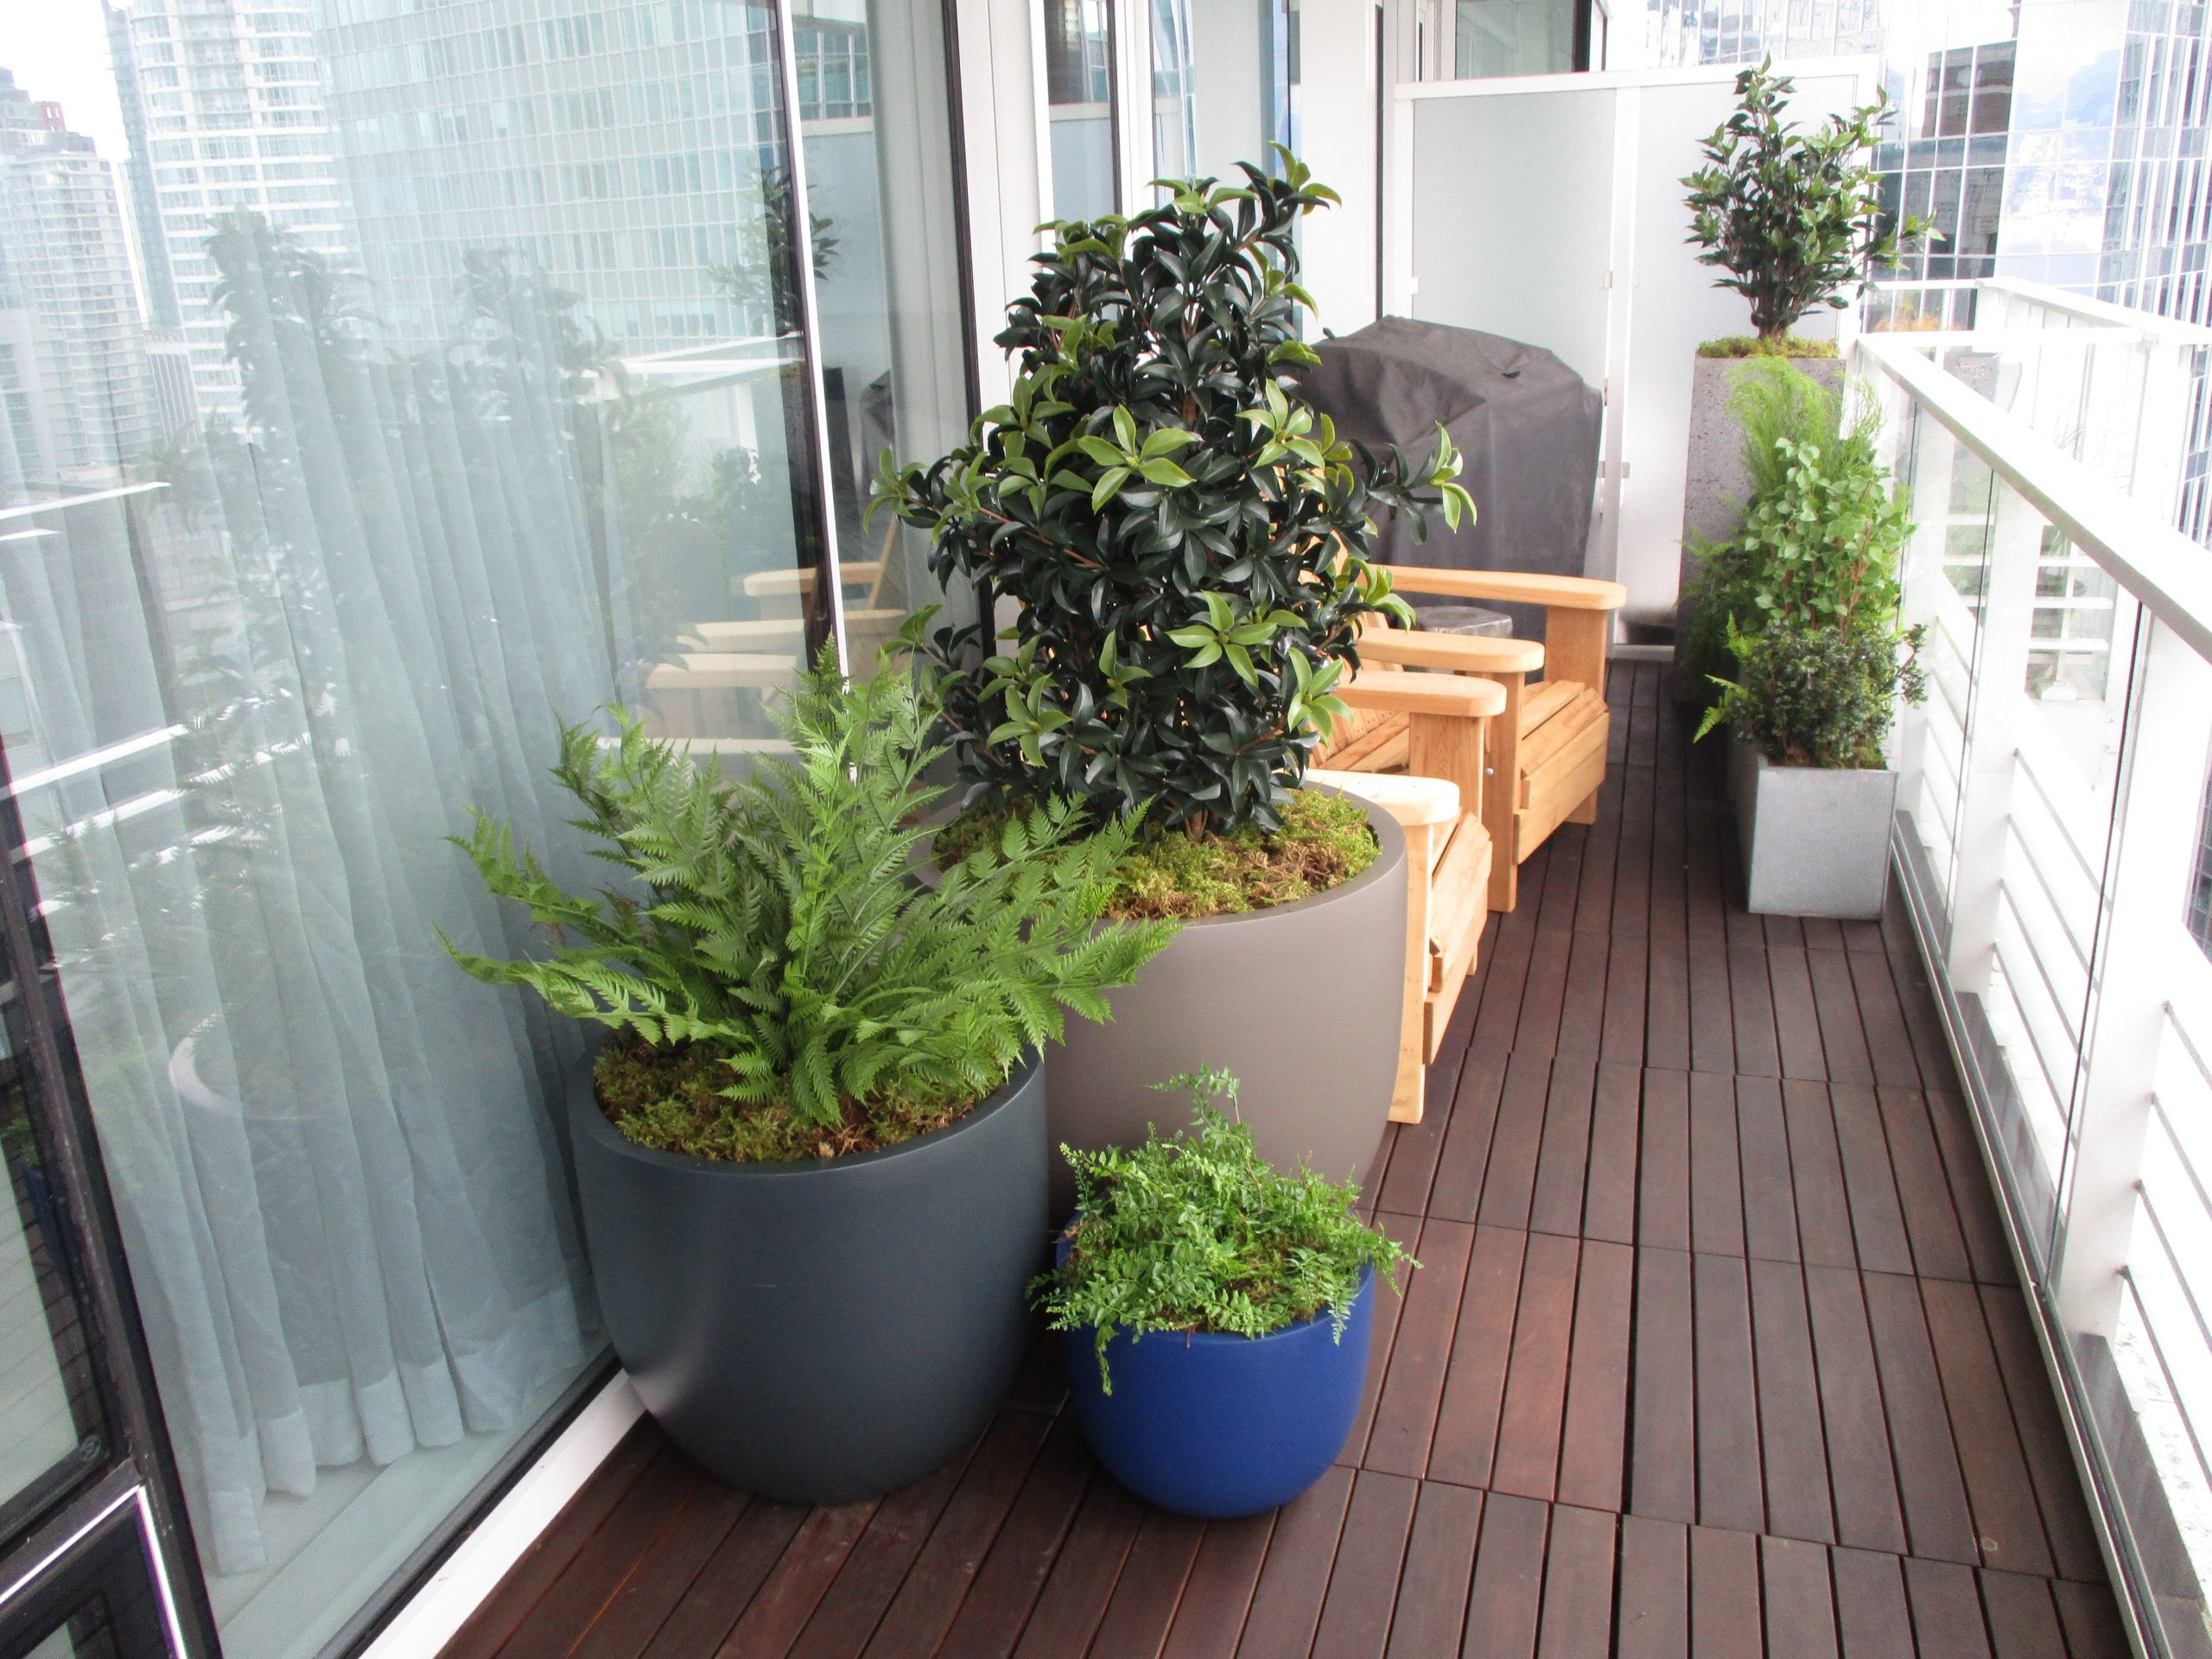 Artificial ferns, laurel and mixed west coast greenery in fibreglass round planter mix for residential patio